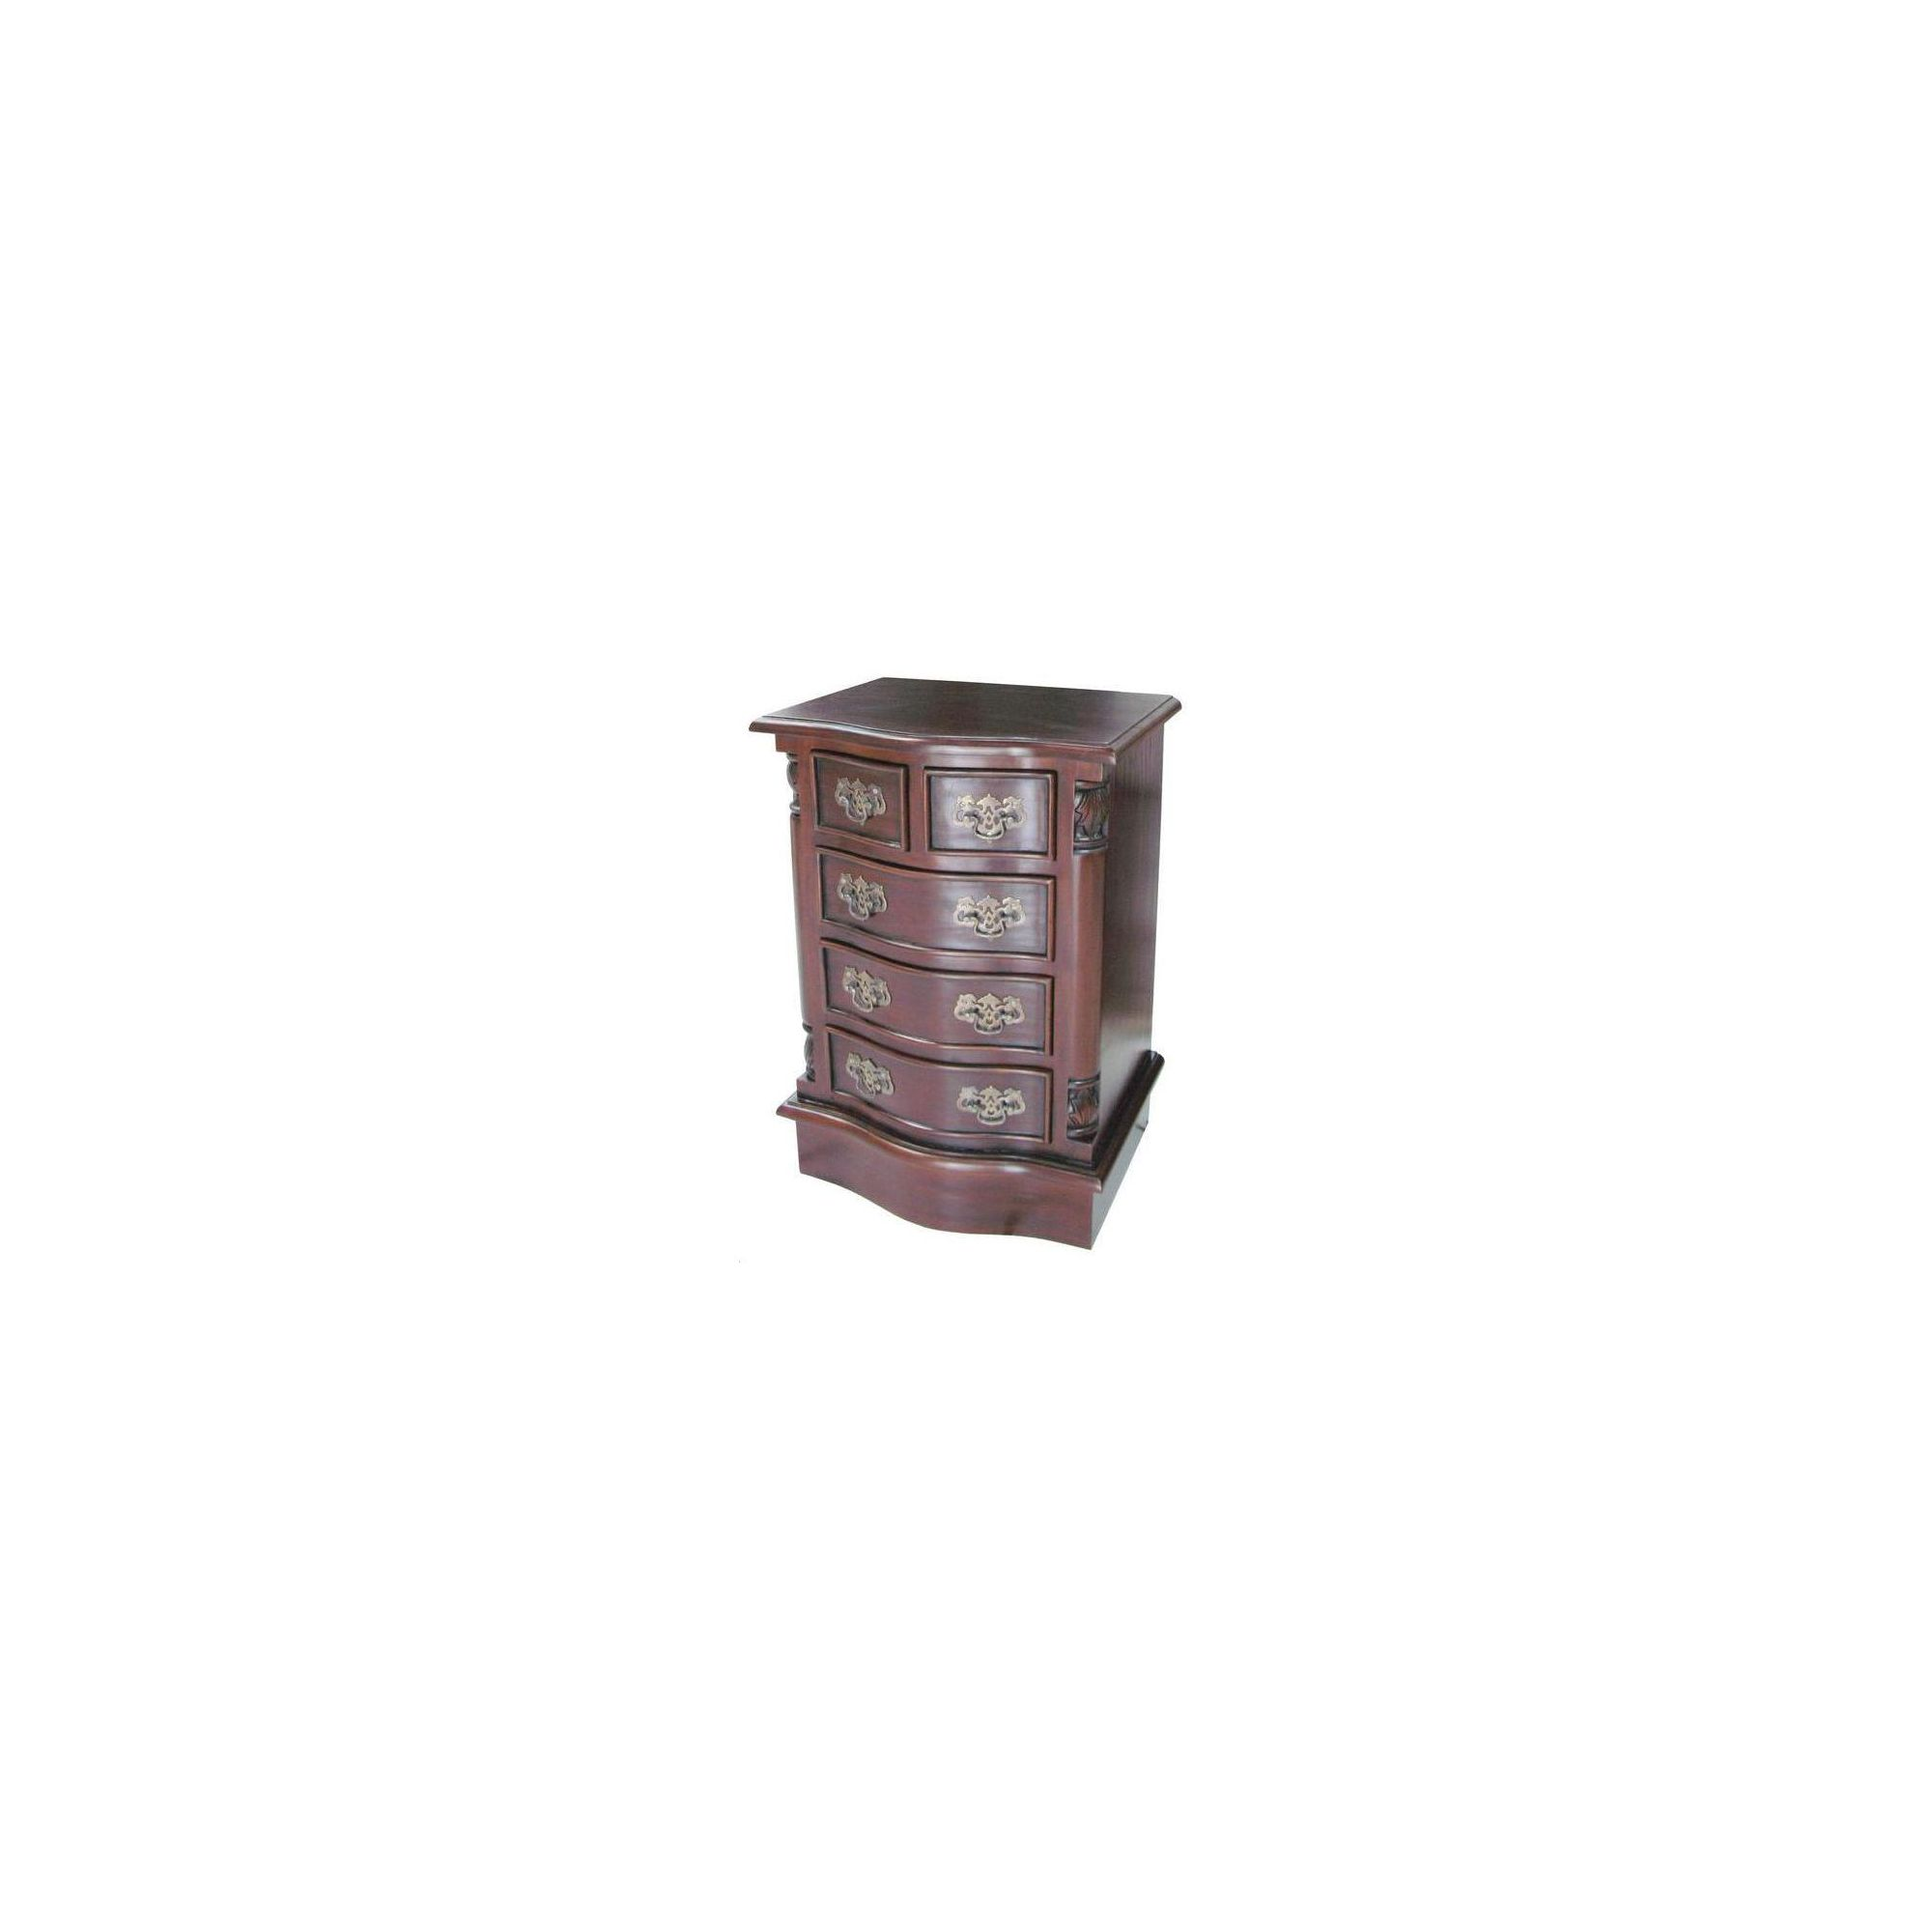 Lock stock and barrel Mahogany 5 Drawer Bowfront Bedside Table in Mahogany - Antique White at Tesco Direct